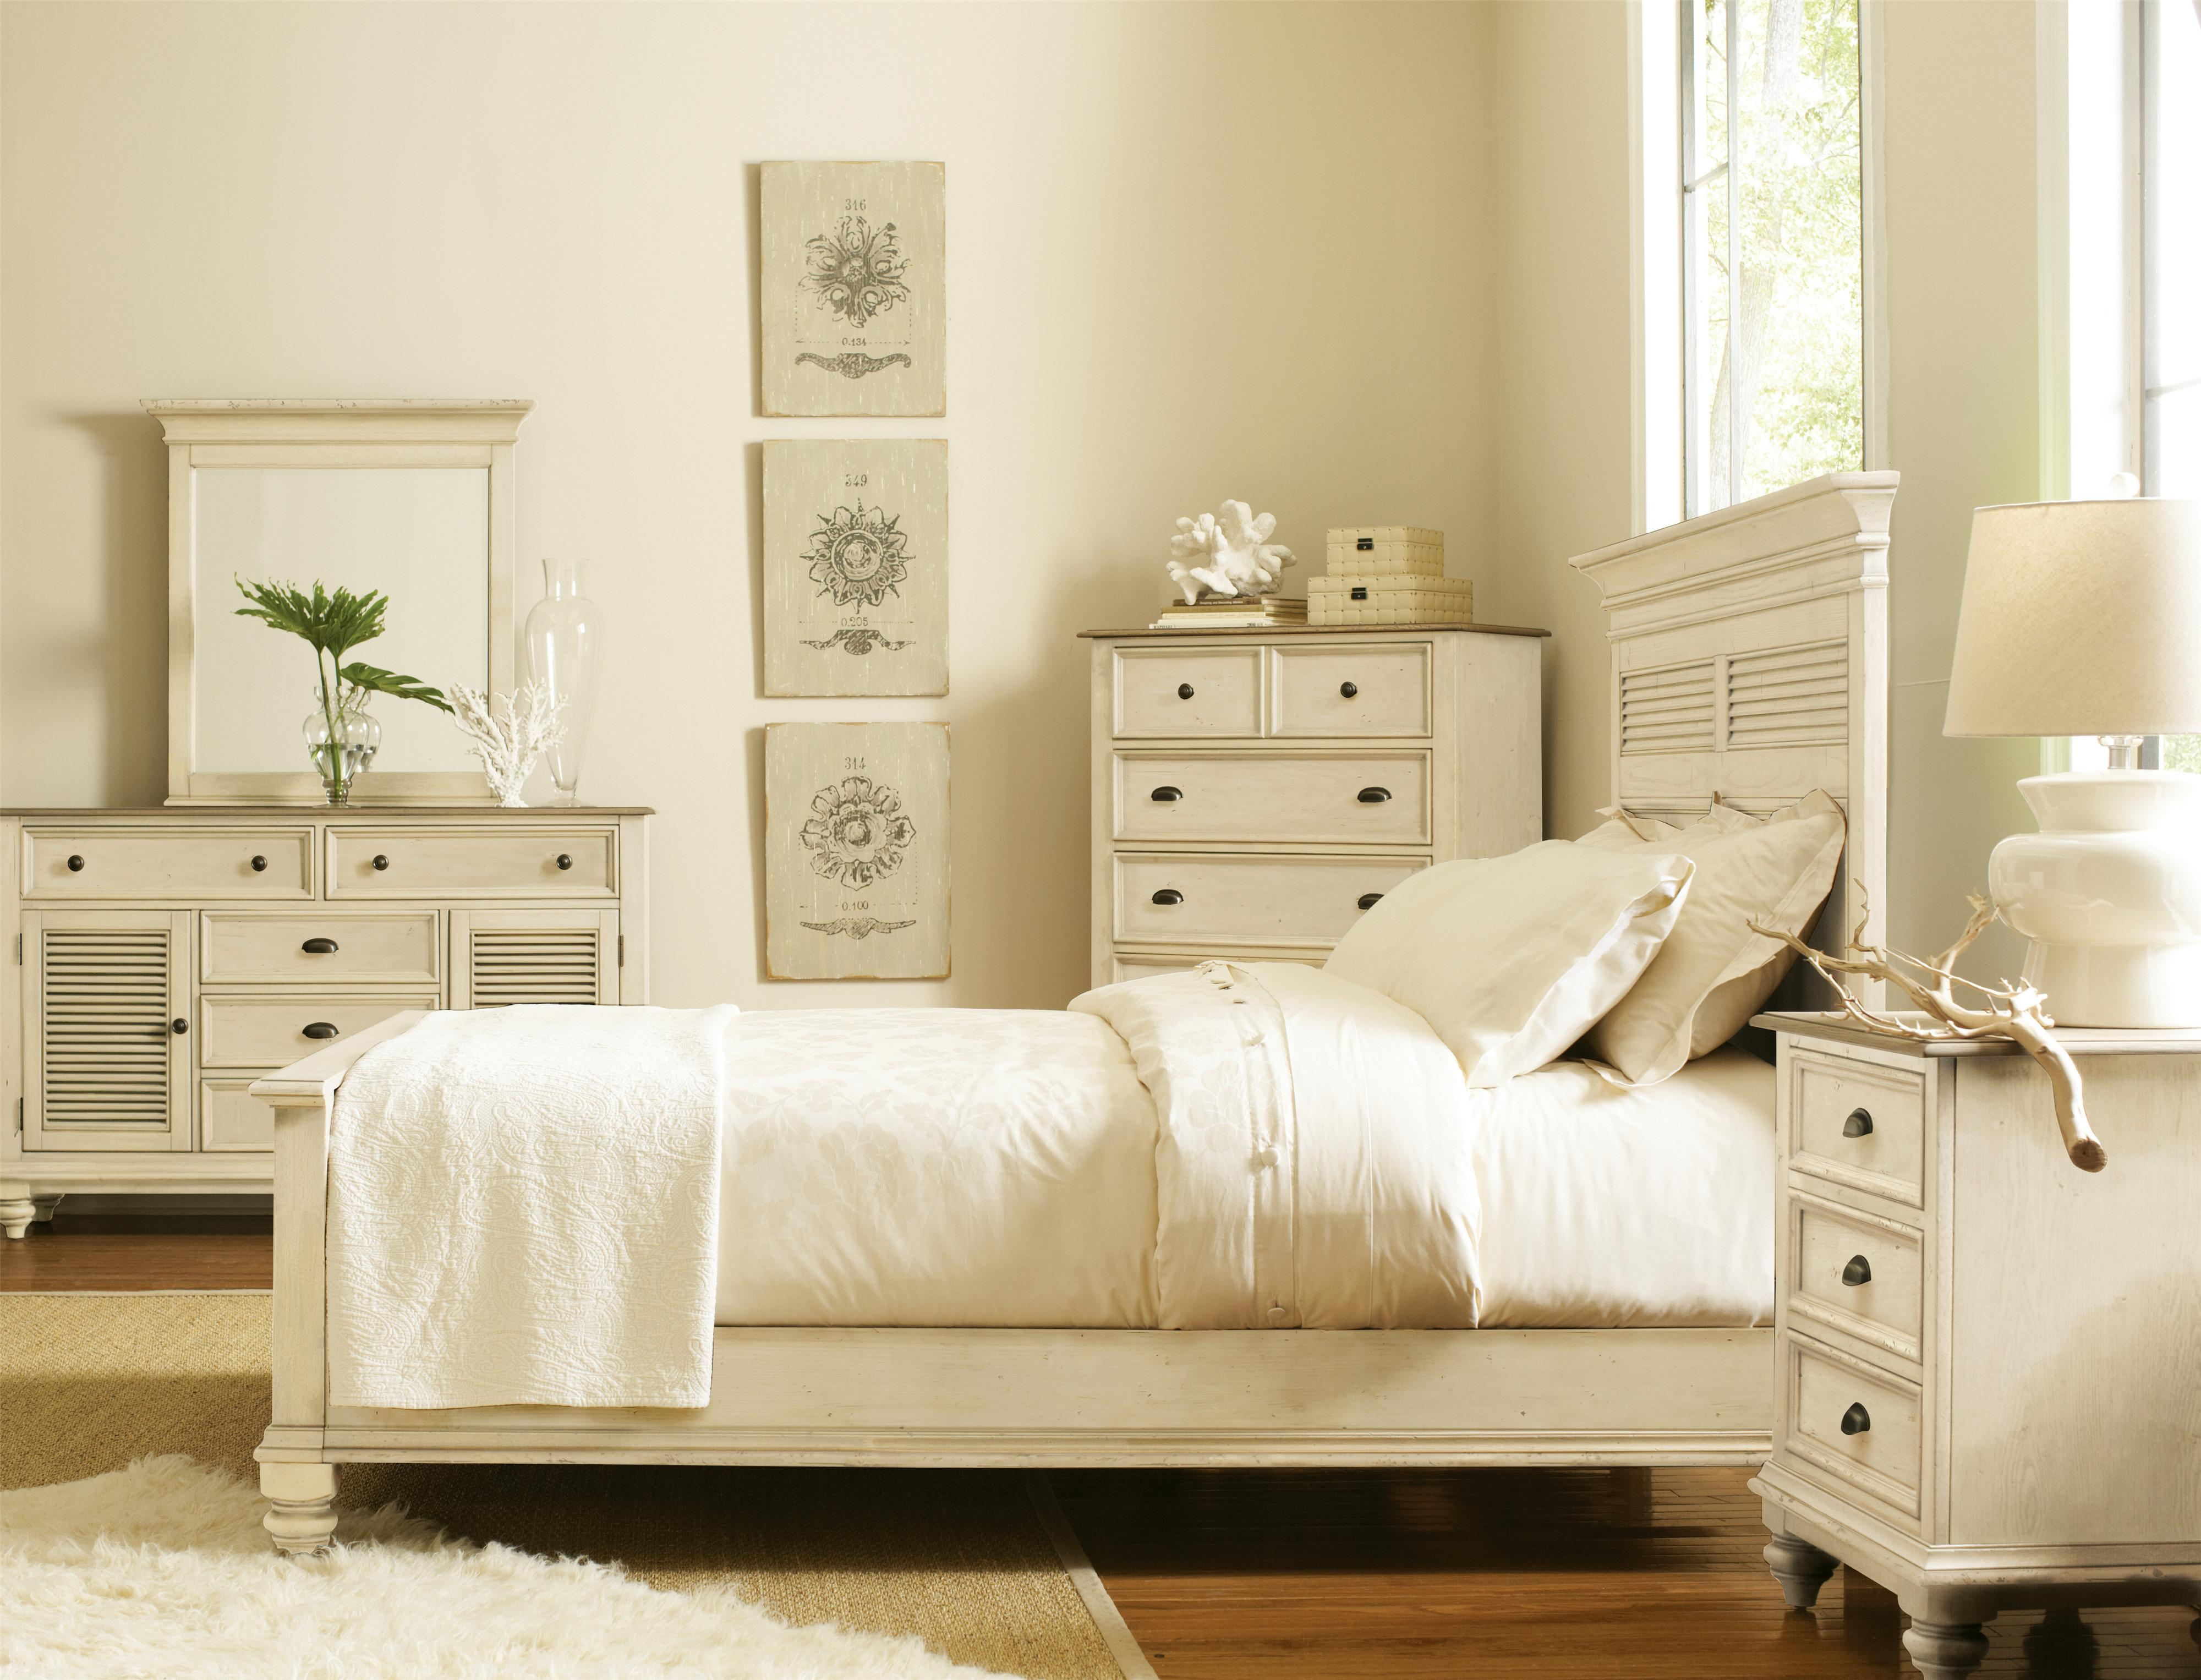 Riverside Furniture Coventry Two Tone California King Bedroom Group - Item Number: 32500 C K Bedroom Group 14